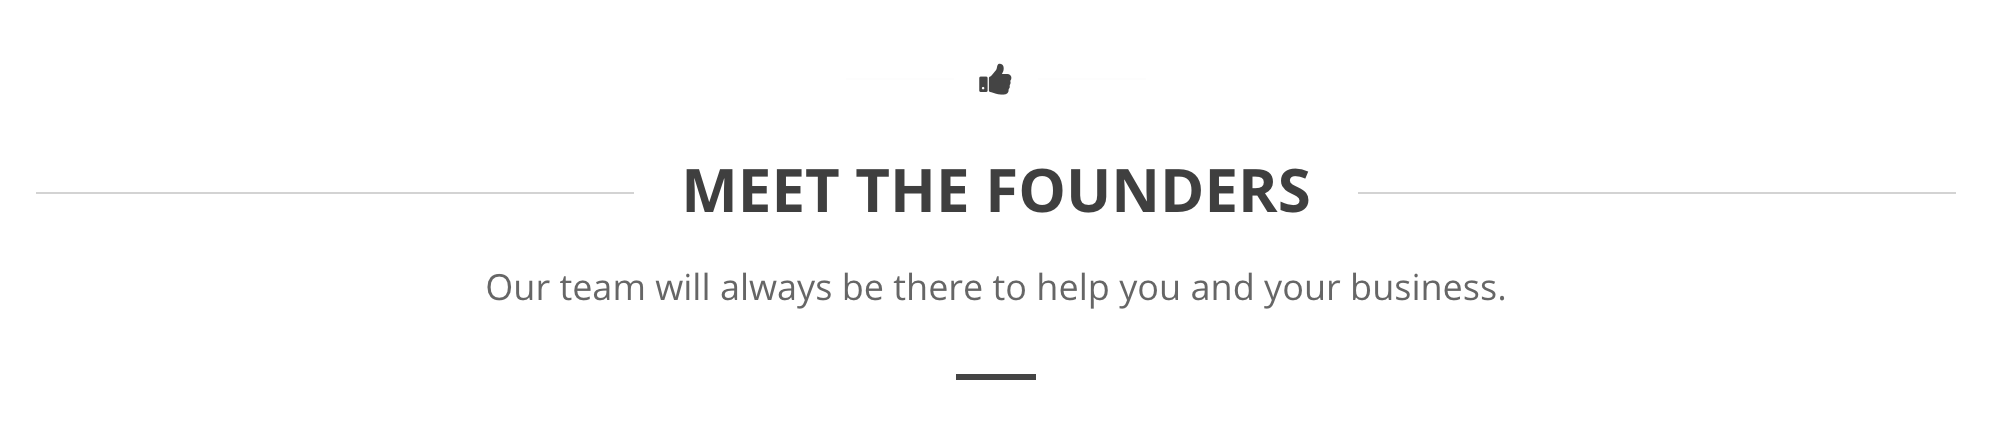 meet-the-founders